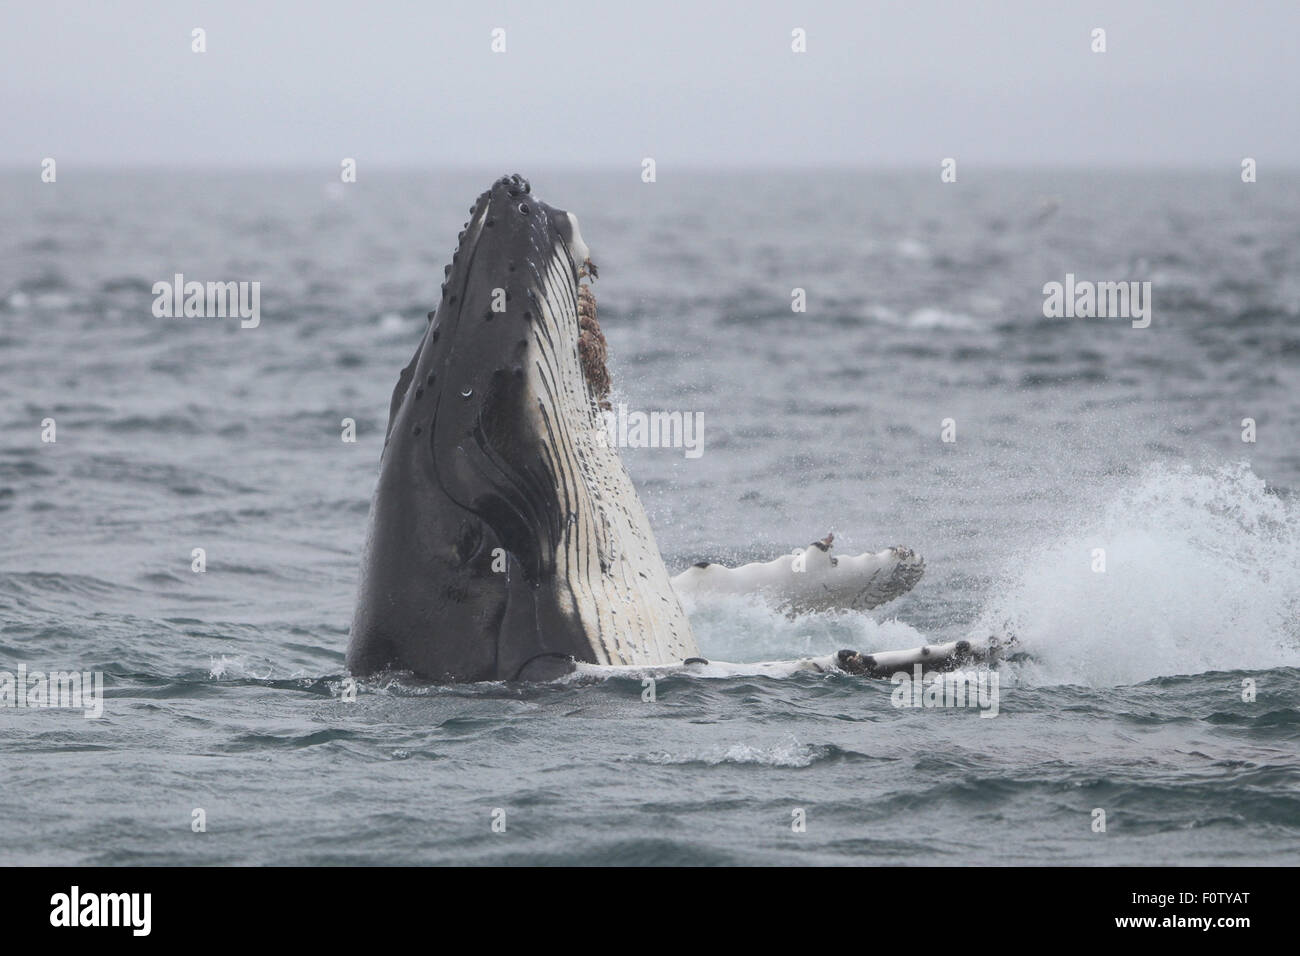 Humpback Whale spyhopping in Icy Strait, SE Alaska - Stock Image